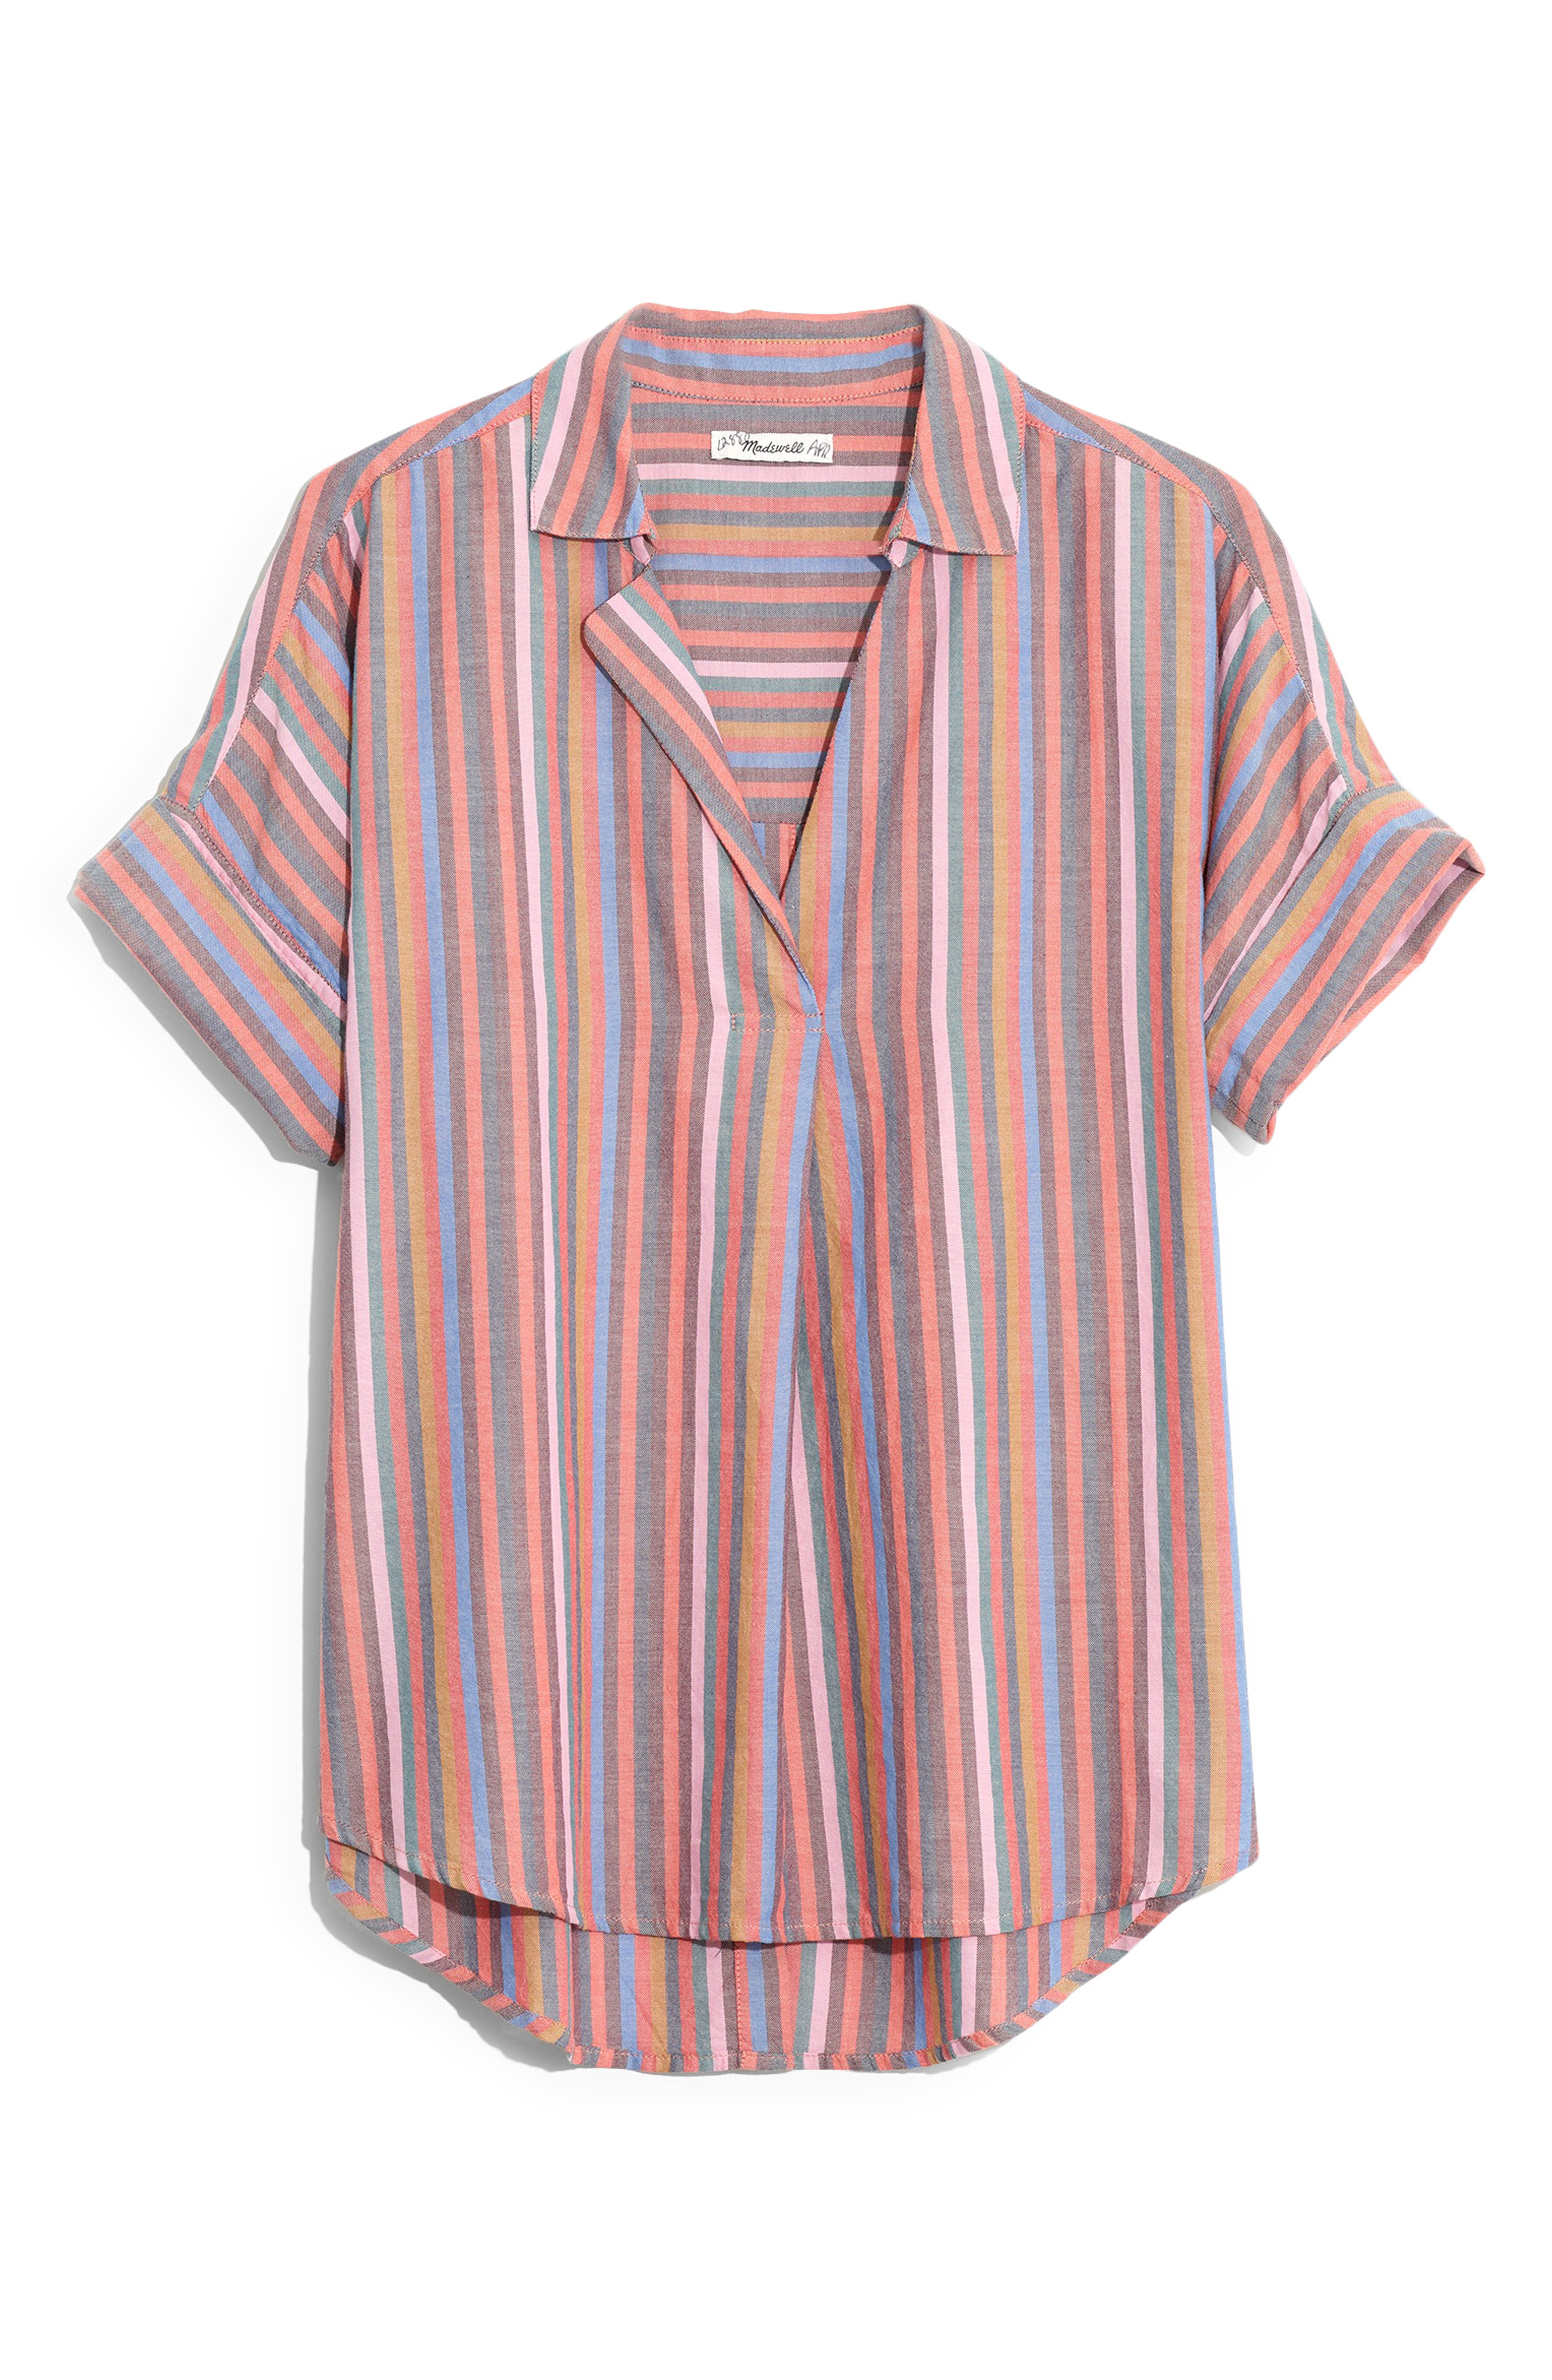 b4c13309daef99 Madewell Courier Rainbow Stripe Button Back Shirt In Mulled Wine Smith  Stripe